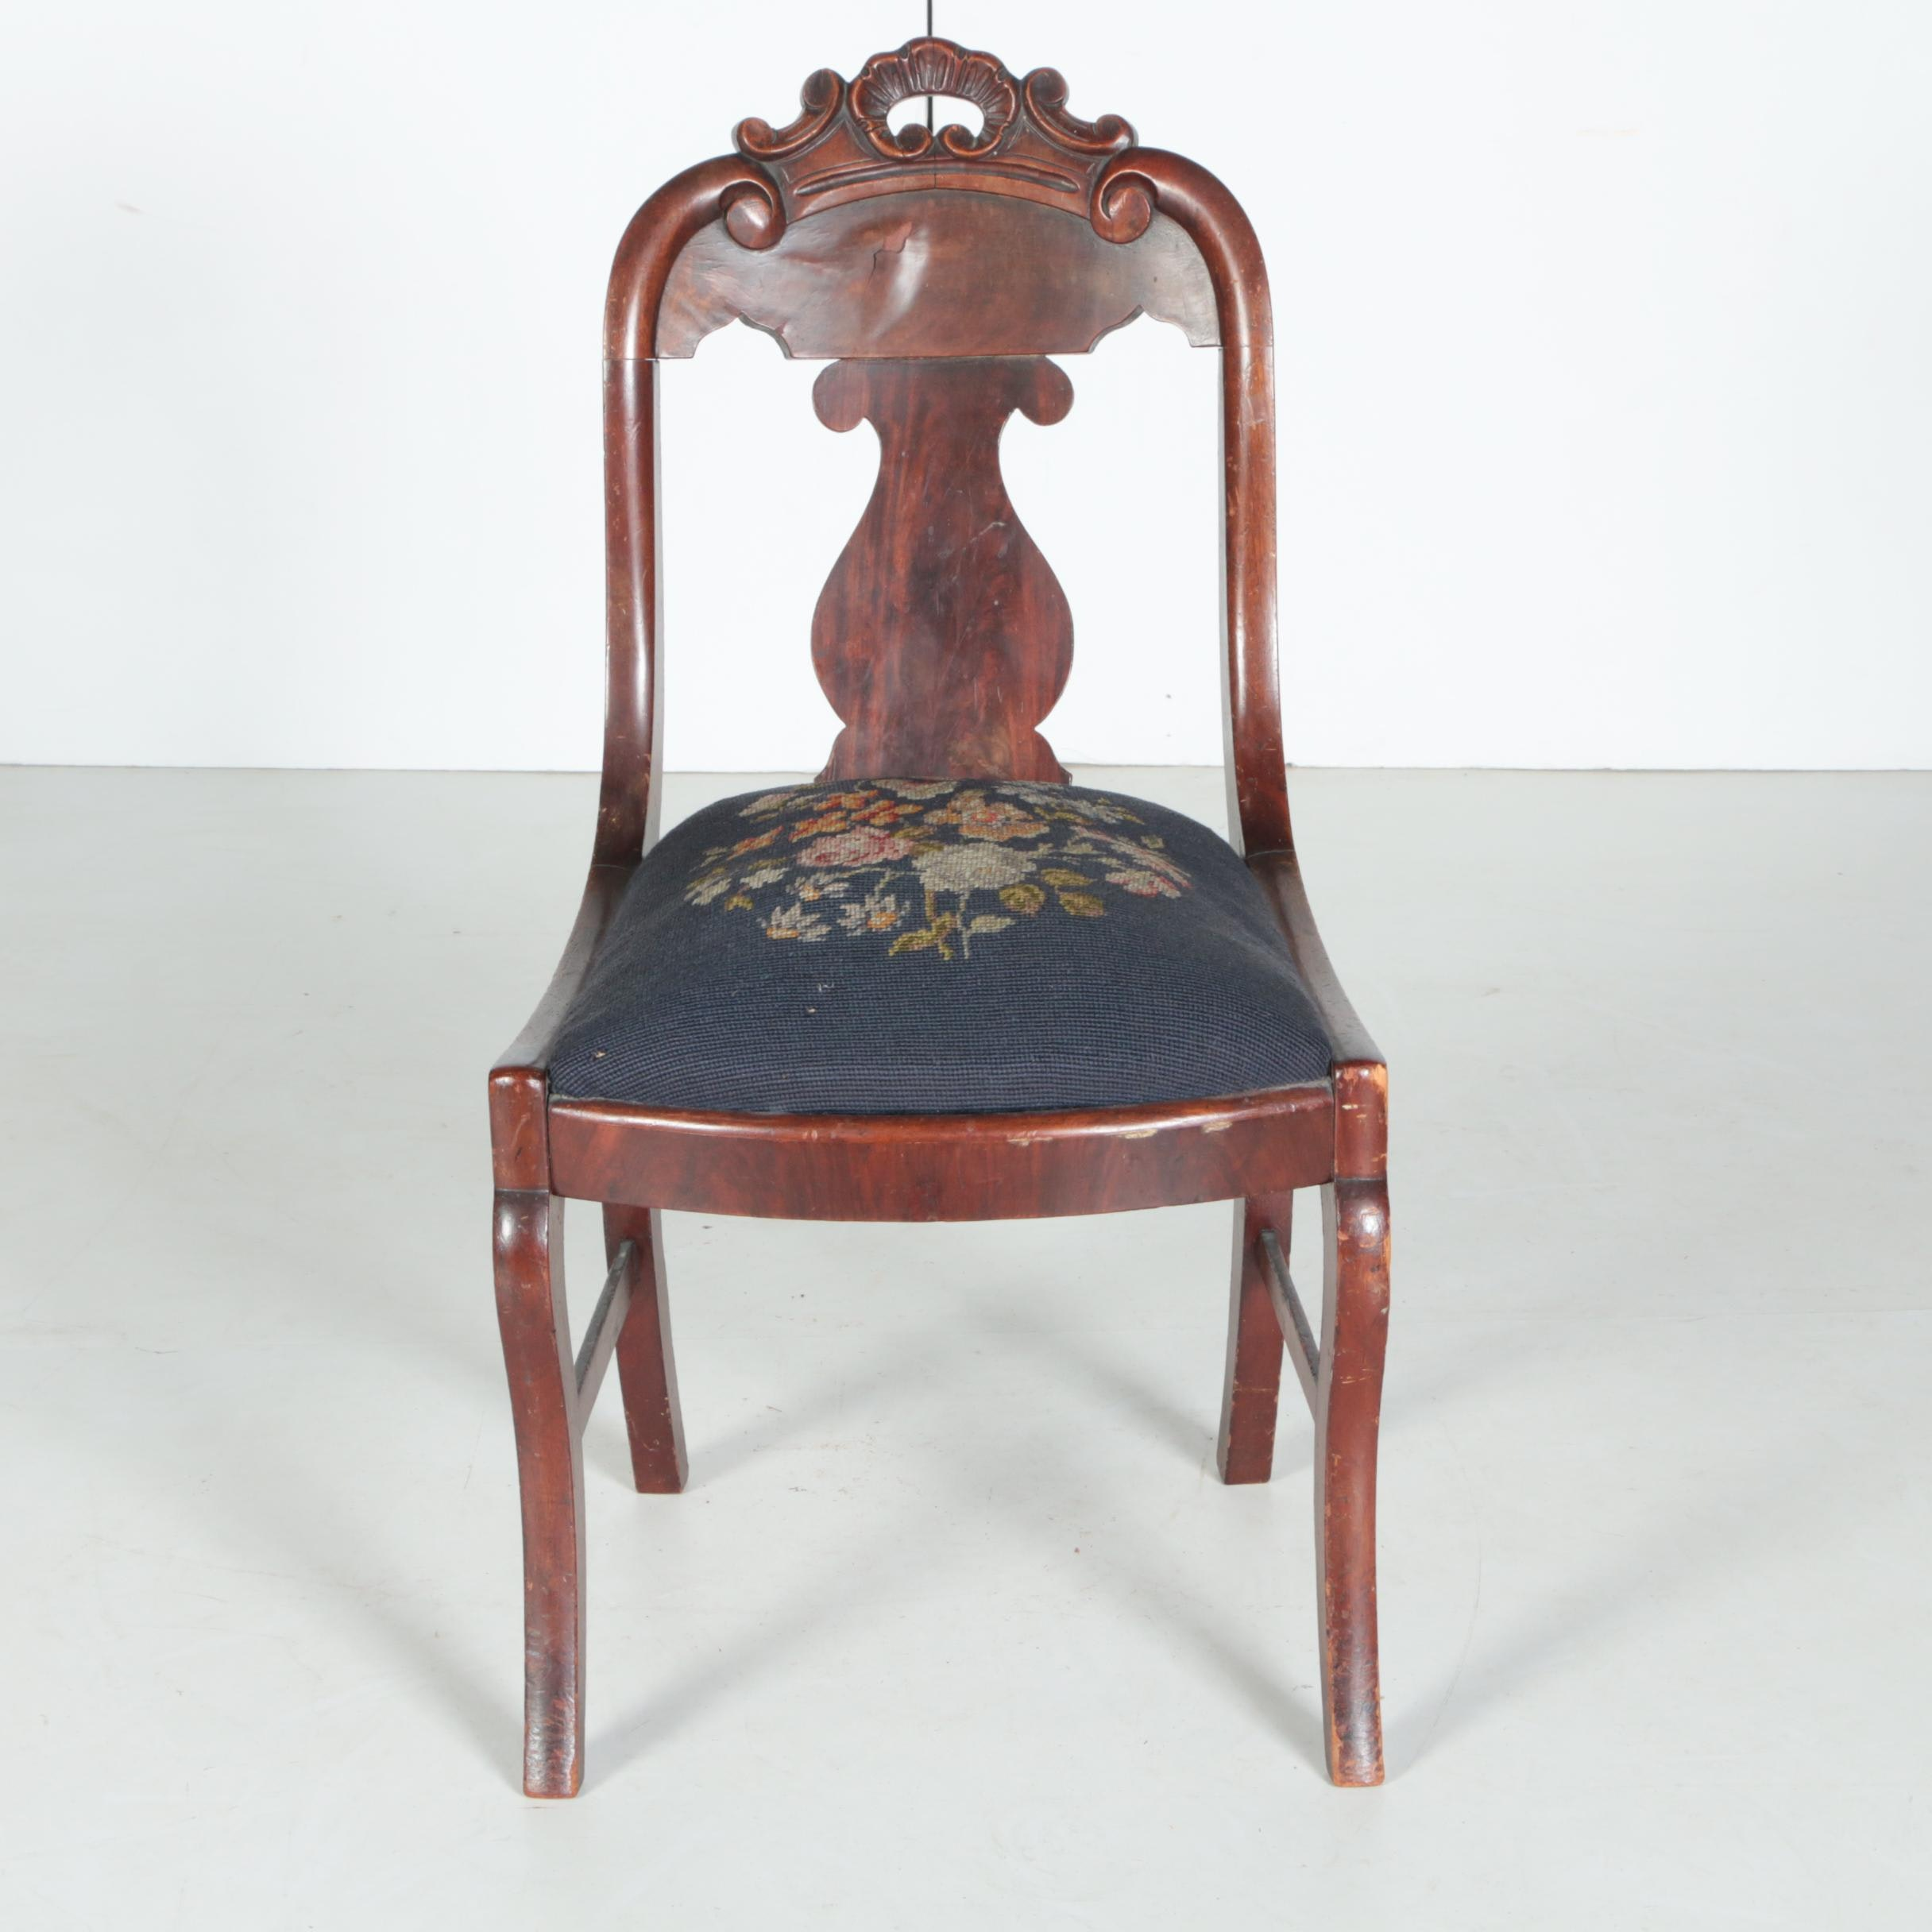 Antique Victorian Mahogany Side Chair with Needlepoint Seat